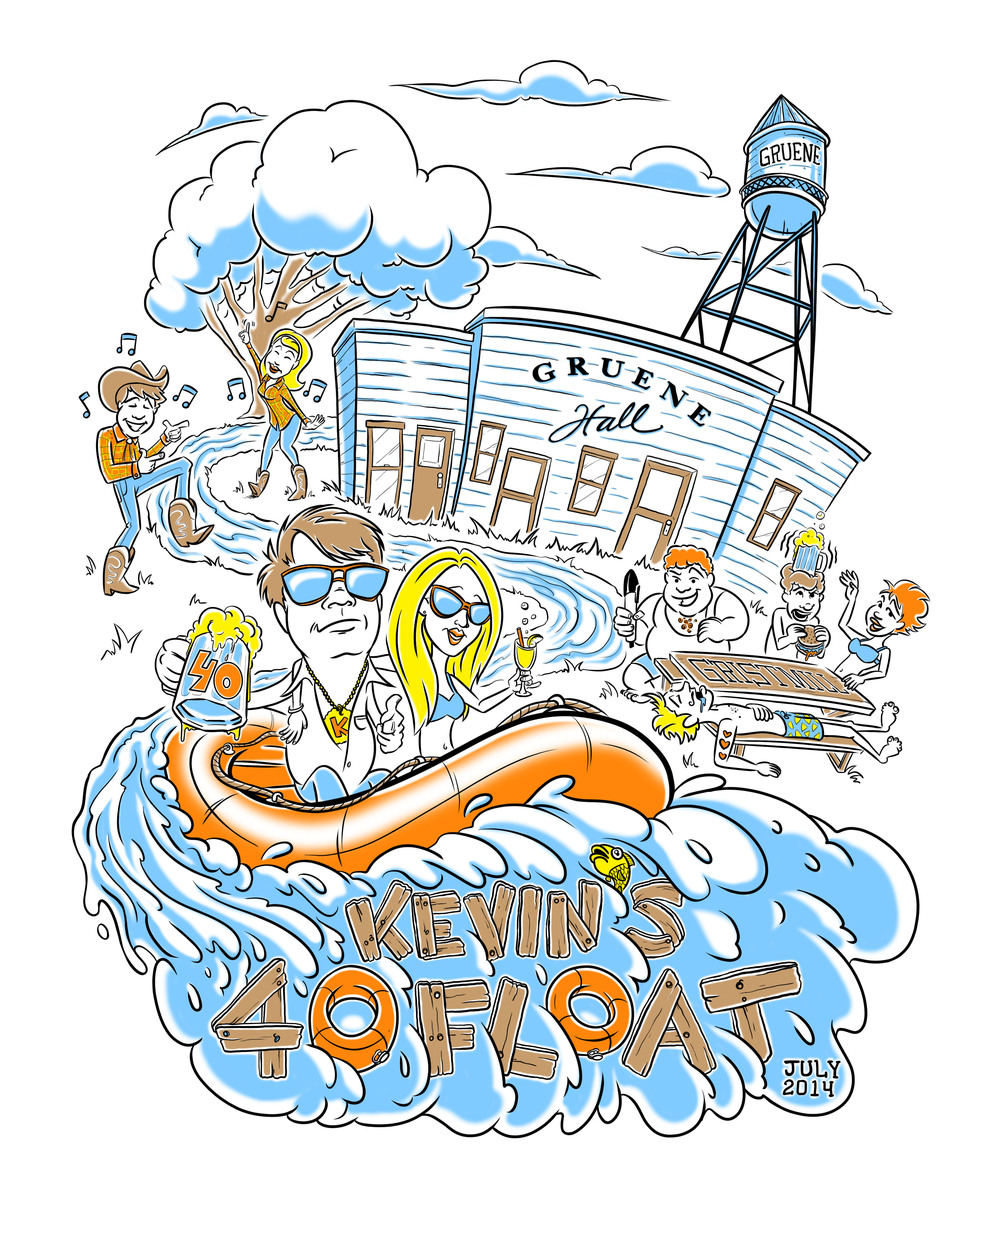 "...""kevin's 40 float"" t-shirt graphic..."